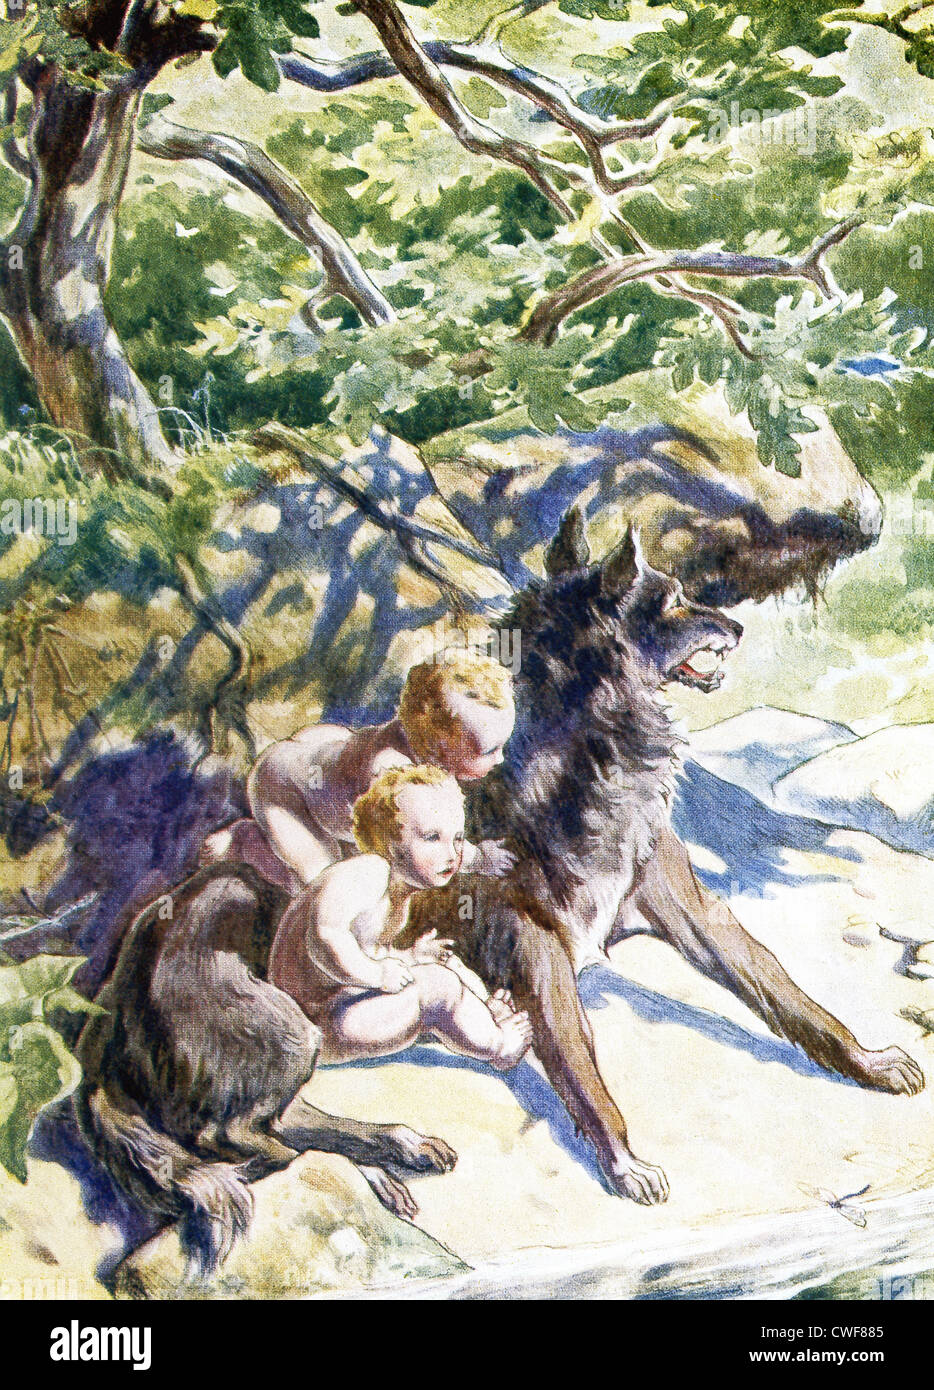 A she-wolf finds and suckles the twin boys Romulus and Remus, as shown here. - Stock Image